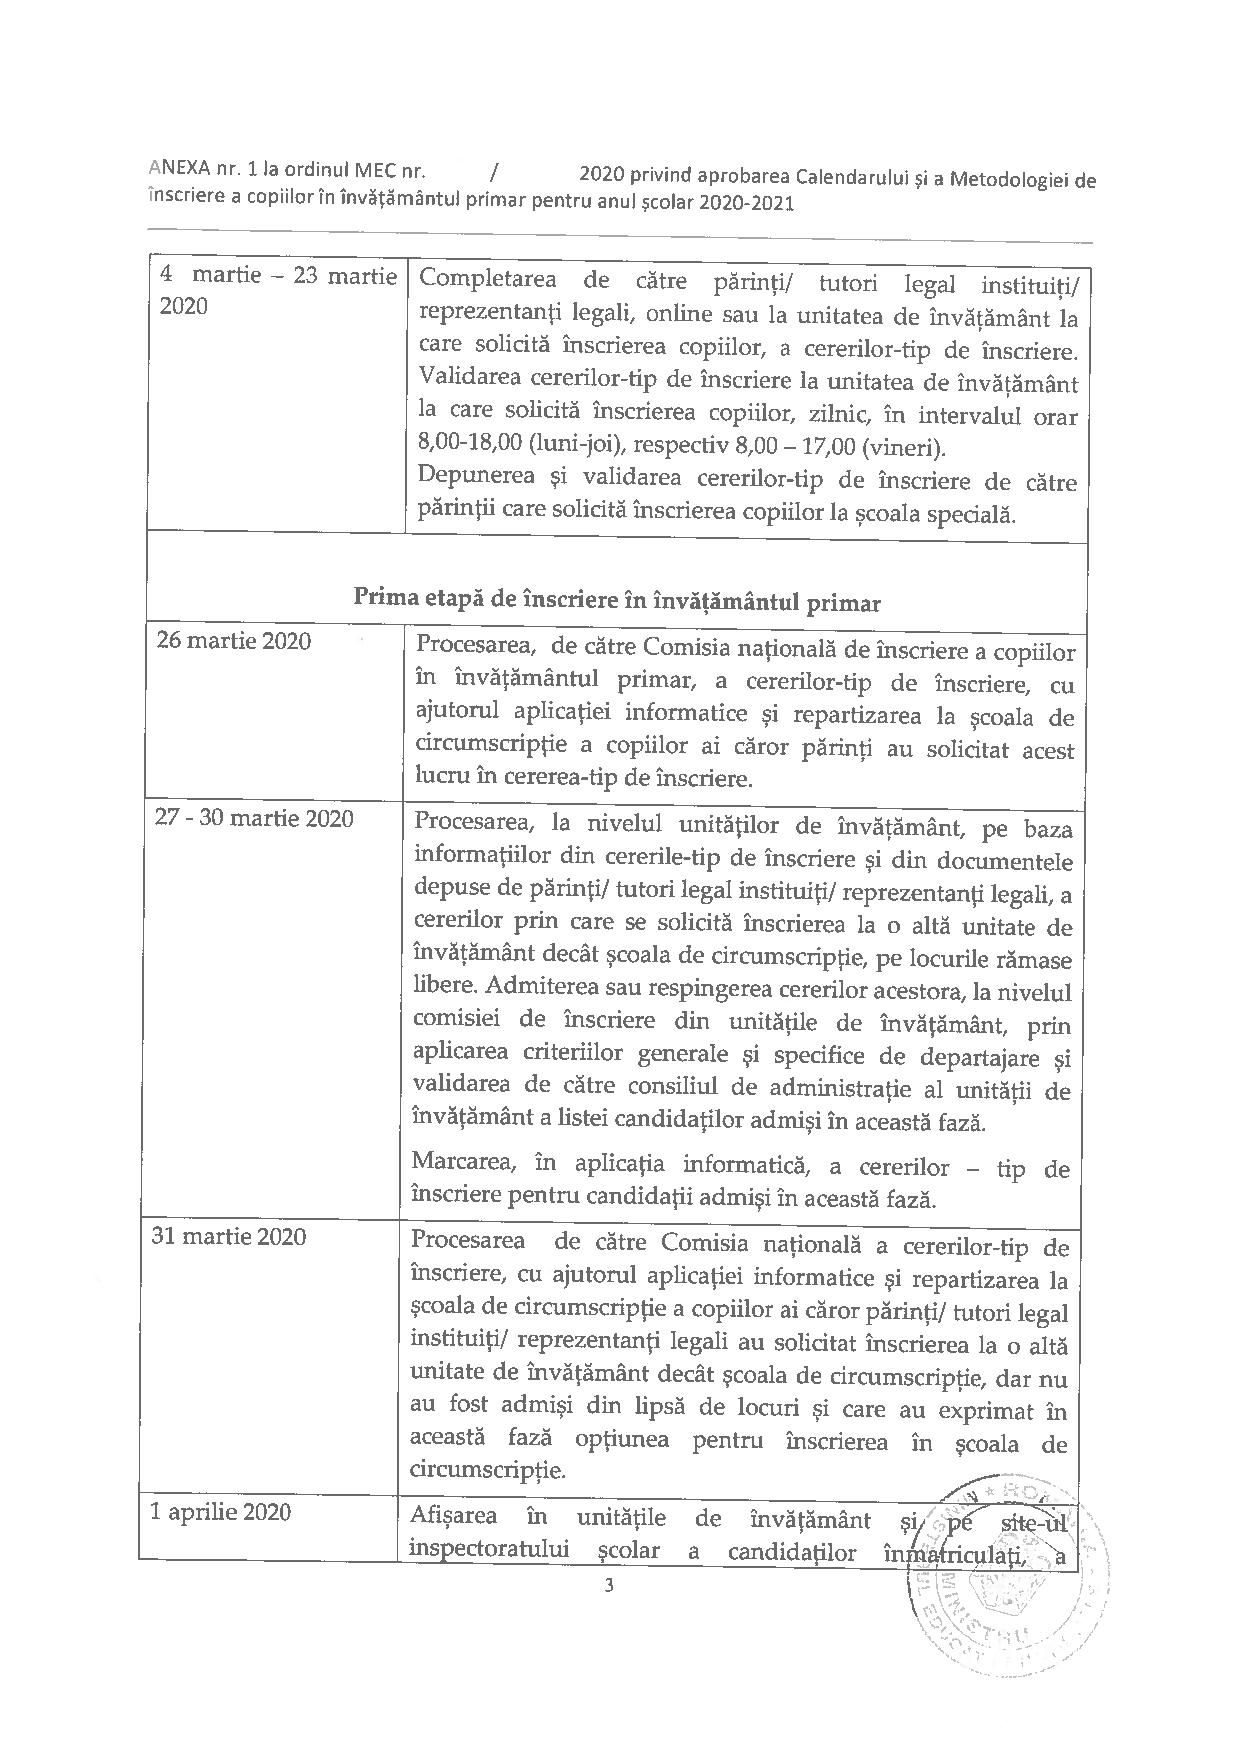 Calendar_inscriere_inv. primar_2020-pages-28-31 (1)-page-003.jpg